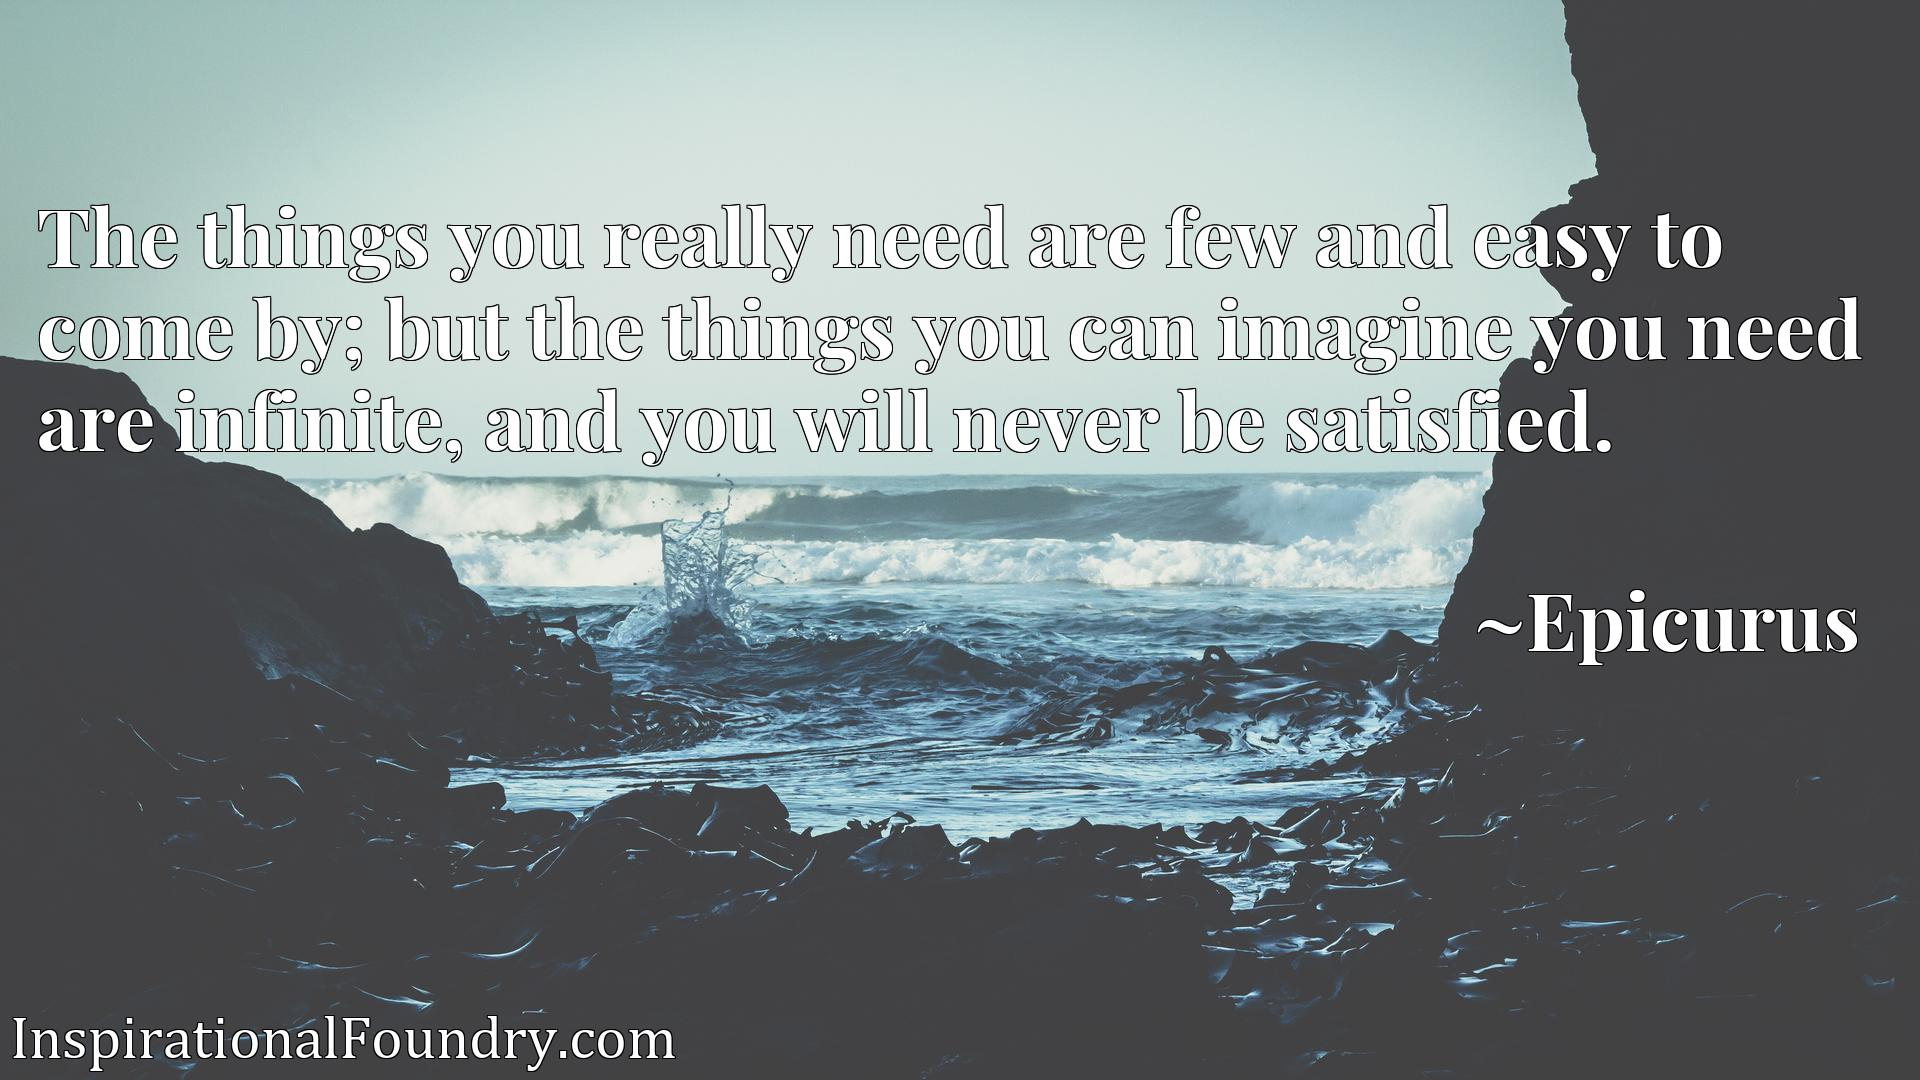 The things you really need are few and easy to come by; but the things you can imagine you need are infinite, and you will never be satisfied.